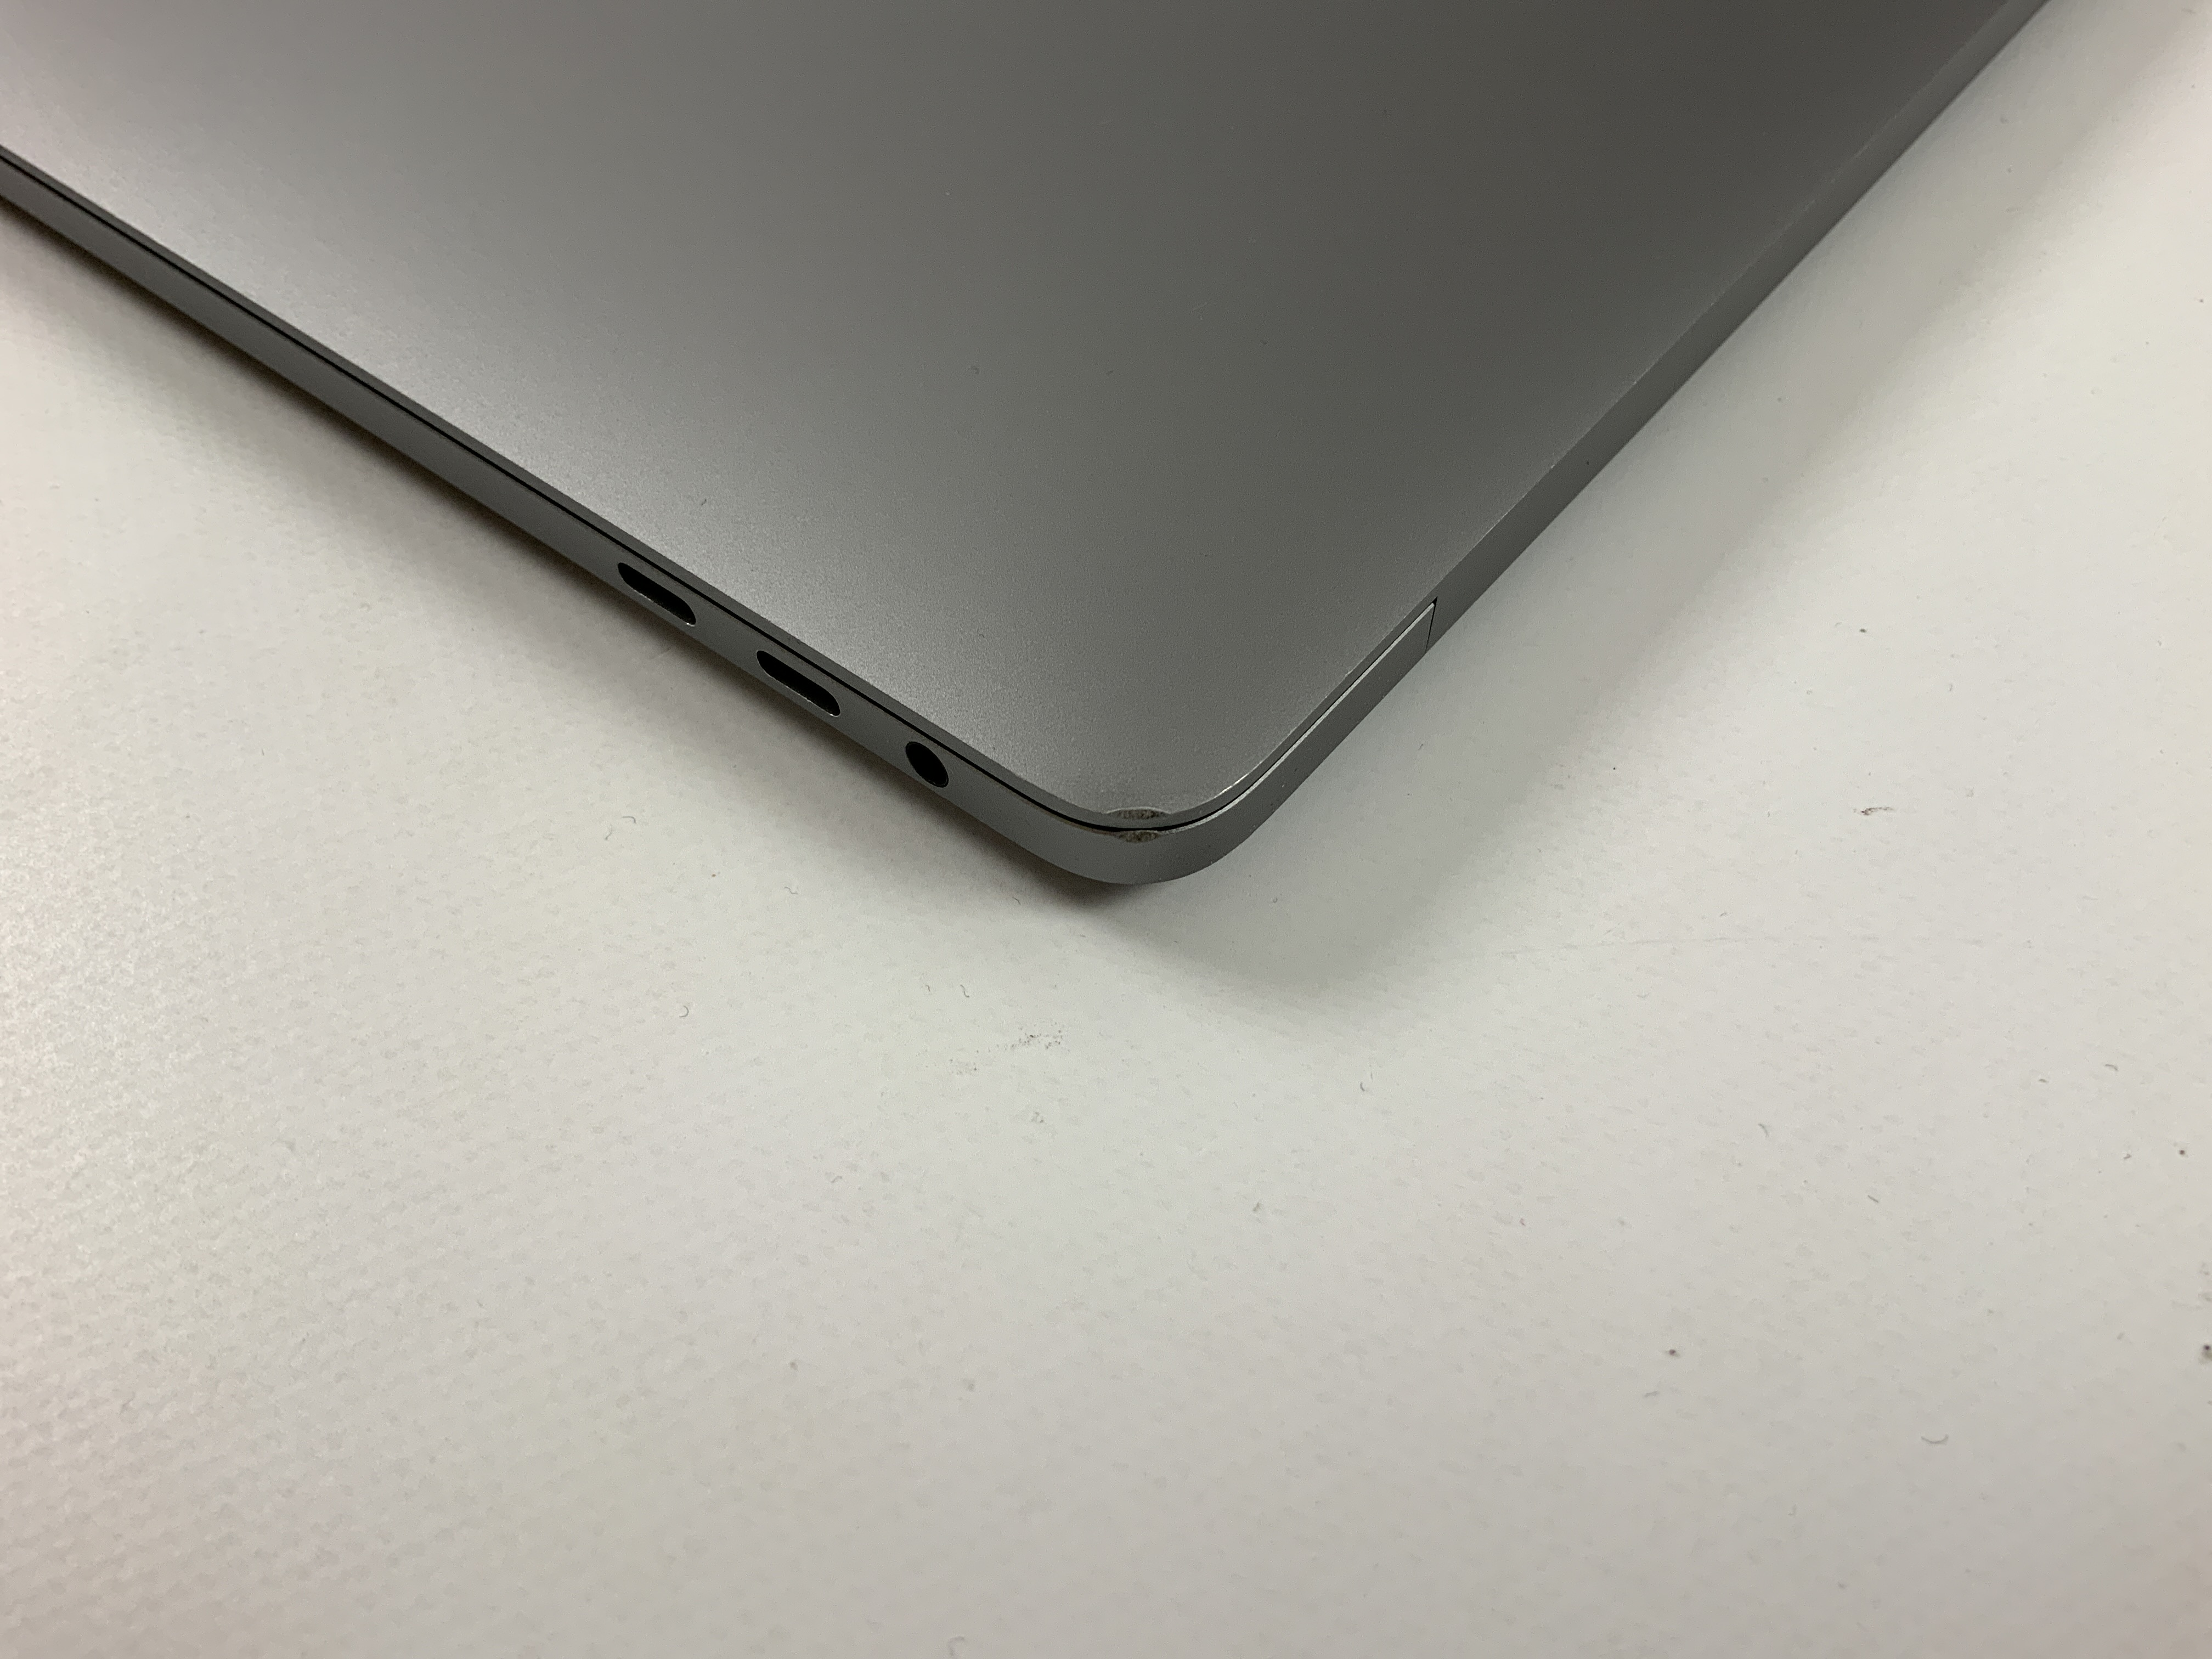 "MacBook Pro 13"" 4TBT Late 2016 (Intel Core i5 2.9 GHz 16 GB RAM 512 GB SSD), Space Gray, Intel Core i5 2.9 GHz, 16 GB RAM, 512 GB SSD, imagen 3"